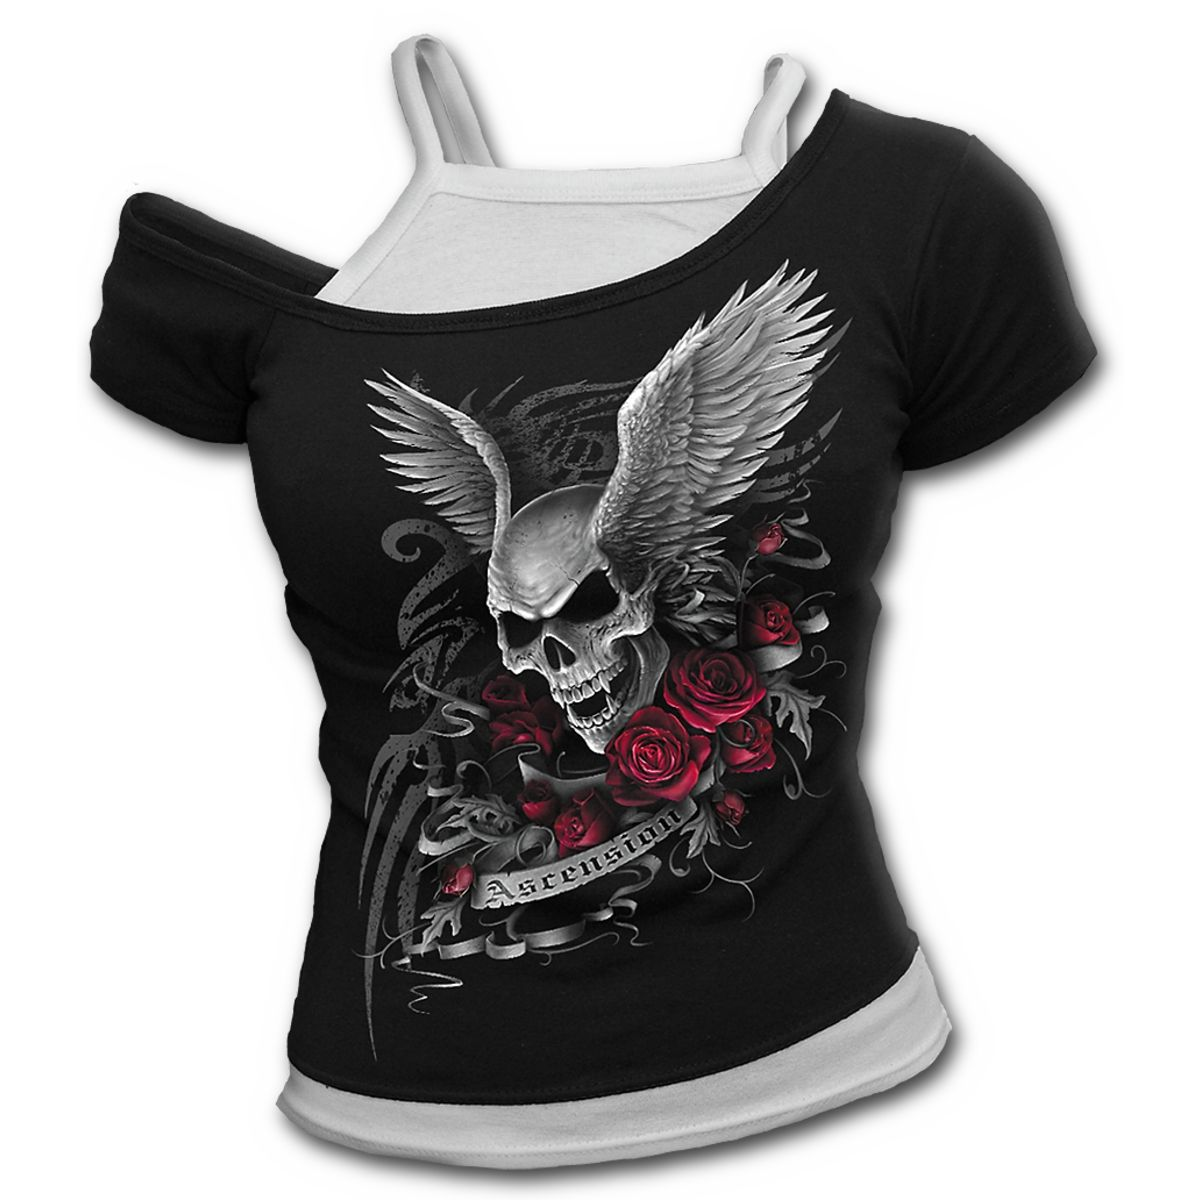 SPIRAL DIRECT Ladies Black Gothic GOTH NIGHTS Skull Top Lace Bat All Sizes